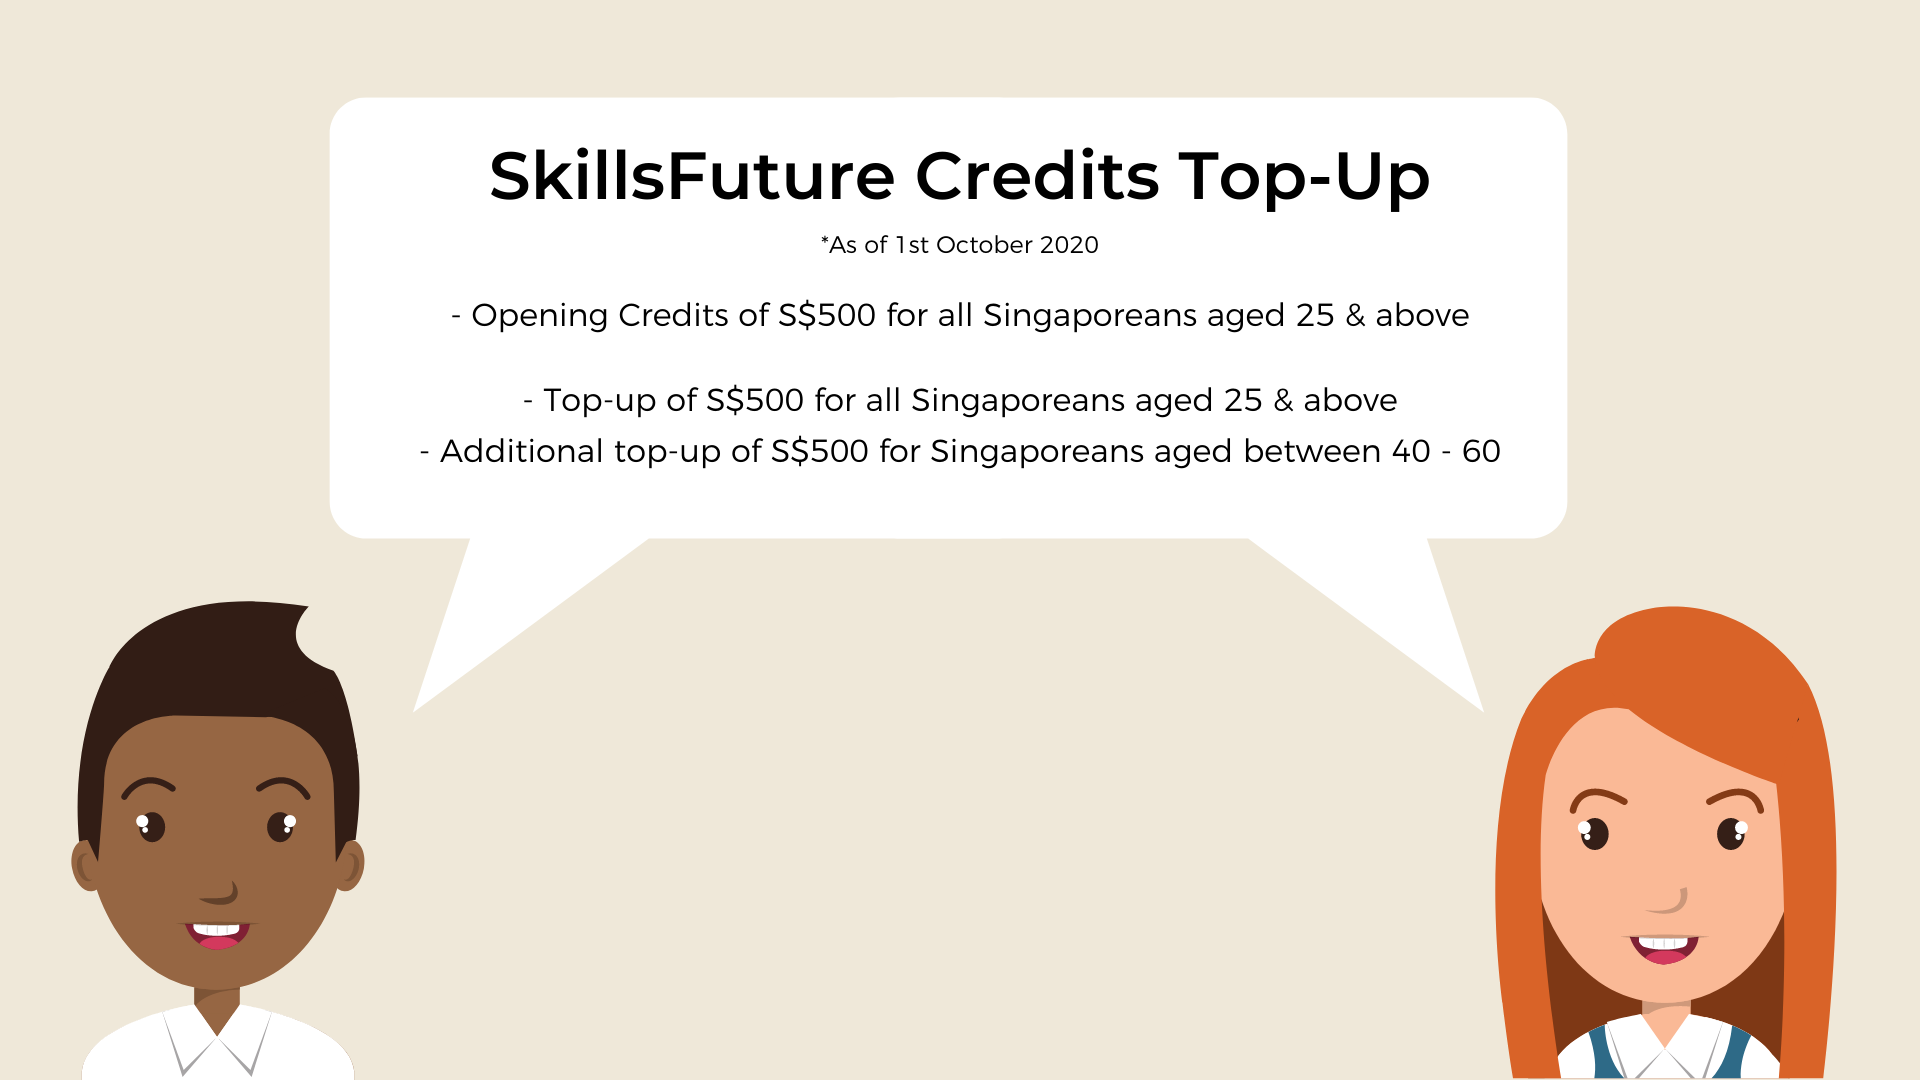 Infographic regarding the latest top-up of SkillsFuture Credits given by the Government.